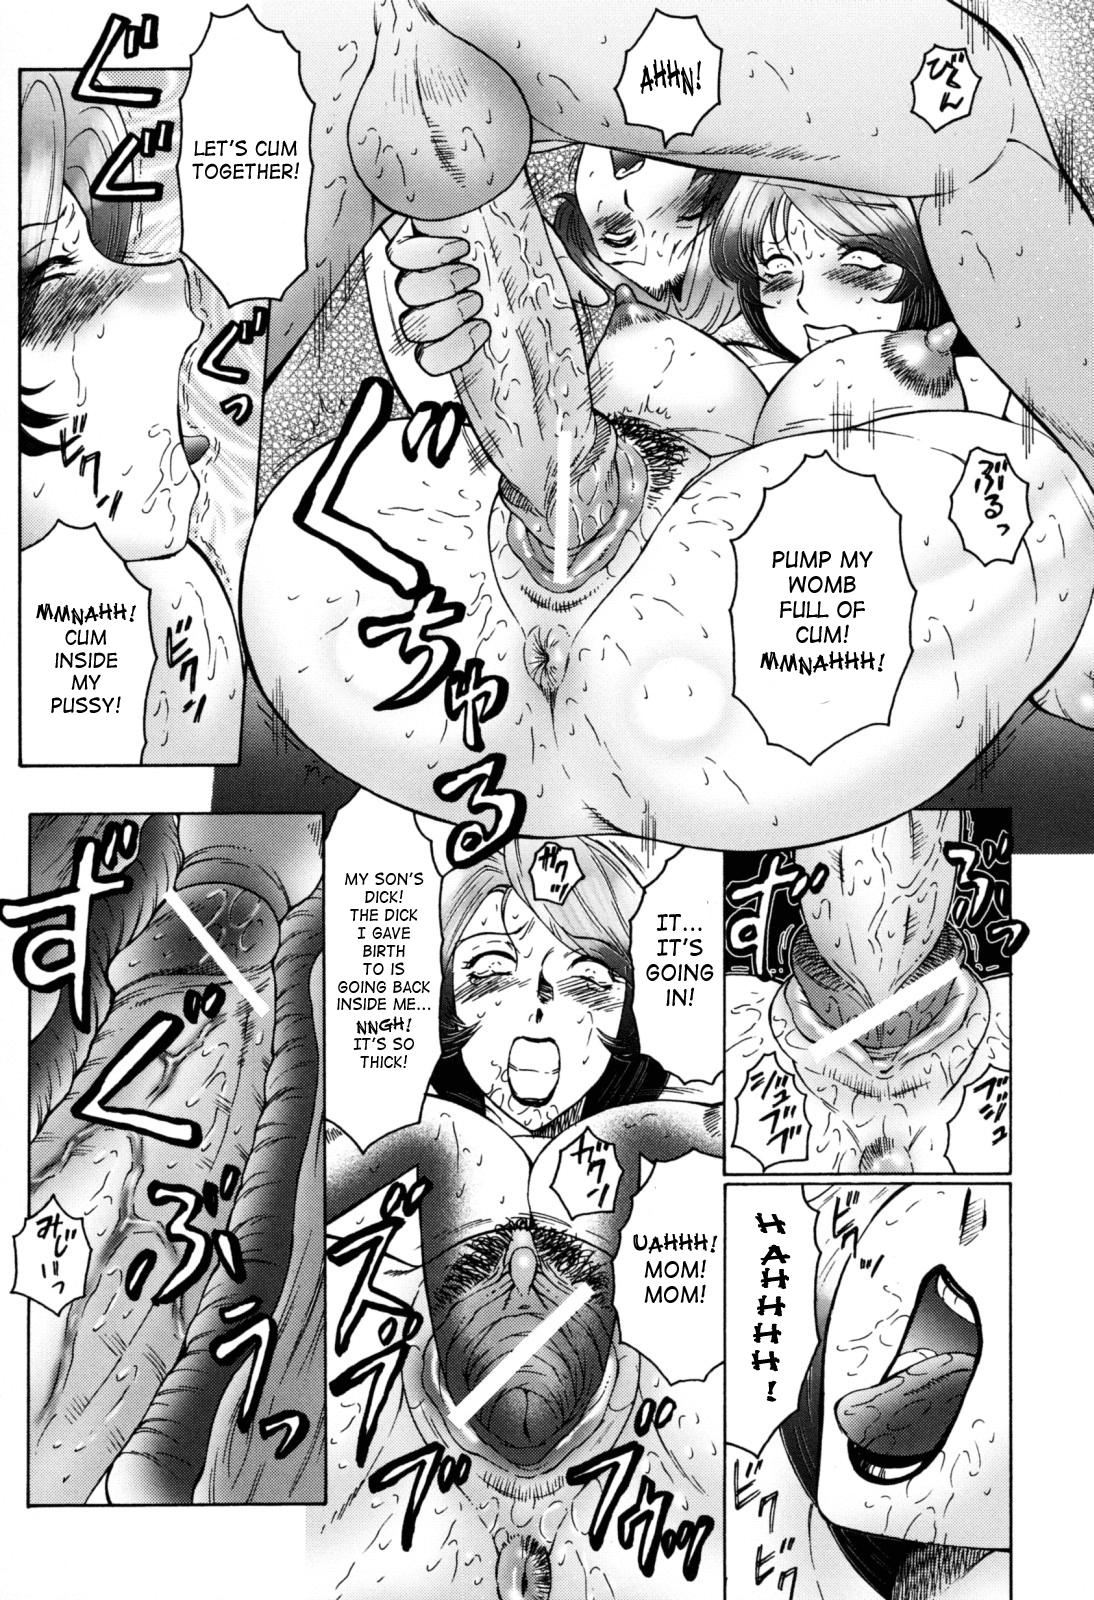 [Fuusen Club] Boshino Toriko - The Captive of Mother and the Son | Enslaved Mother and Son Ch. 1-5 [English] [SaHa] 88